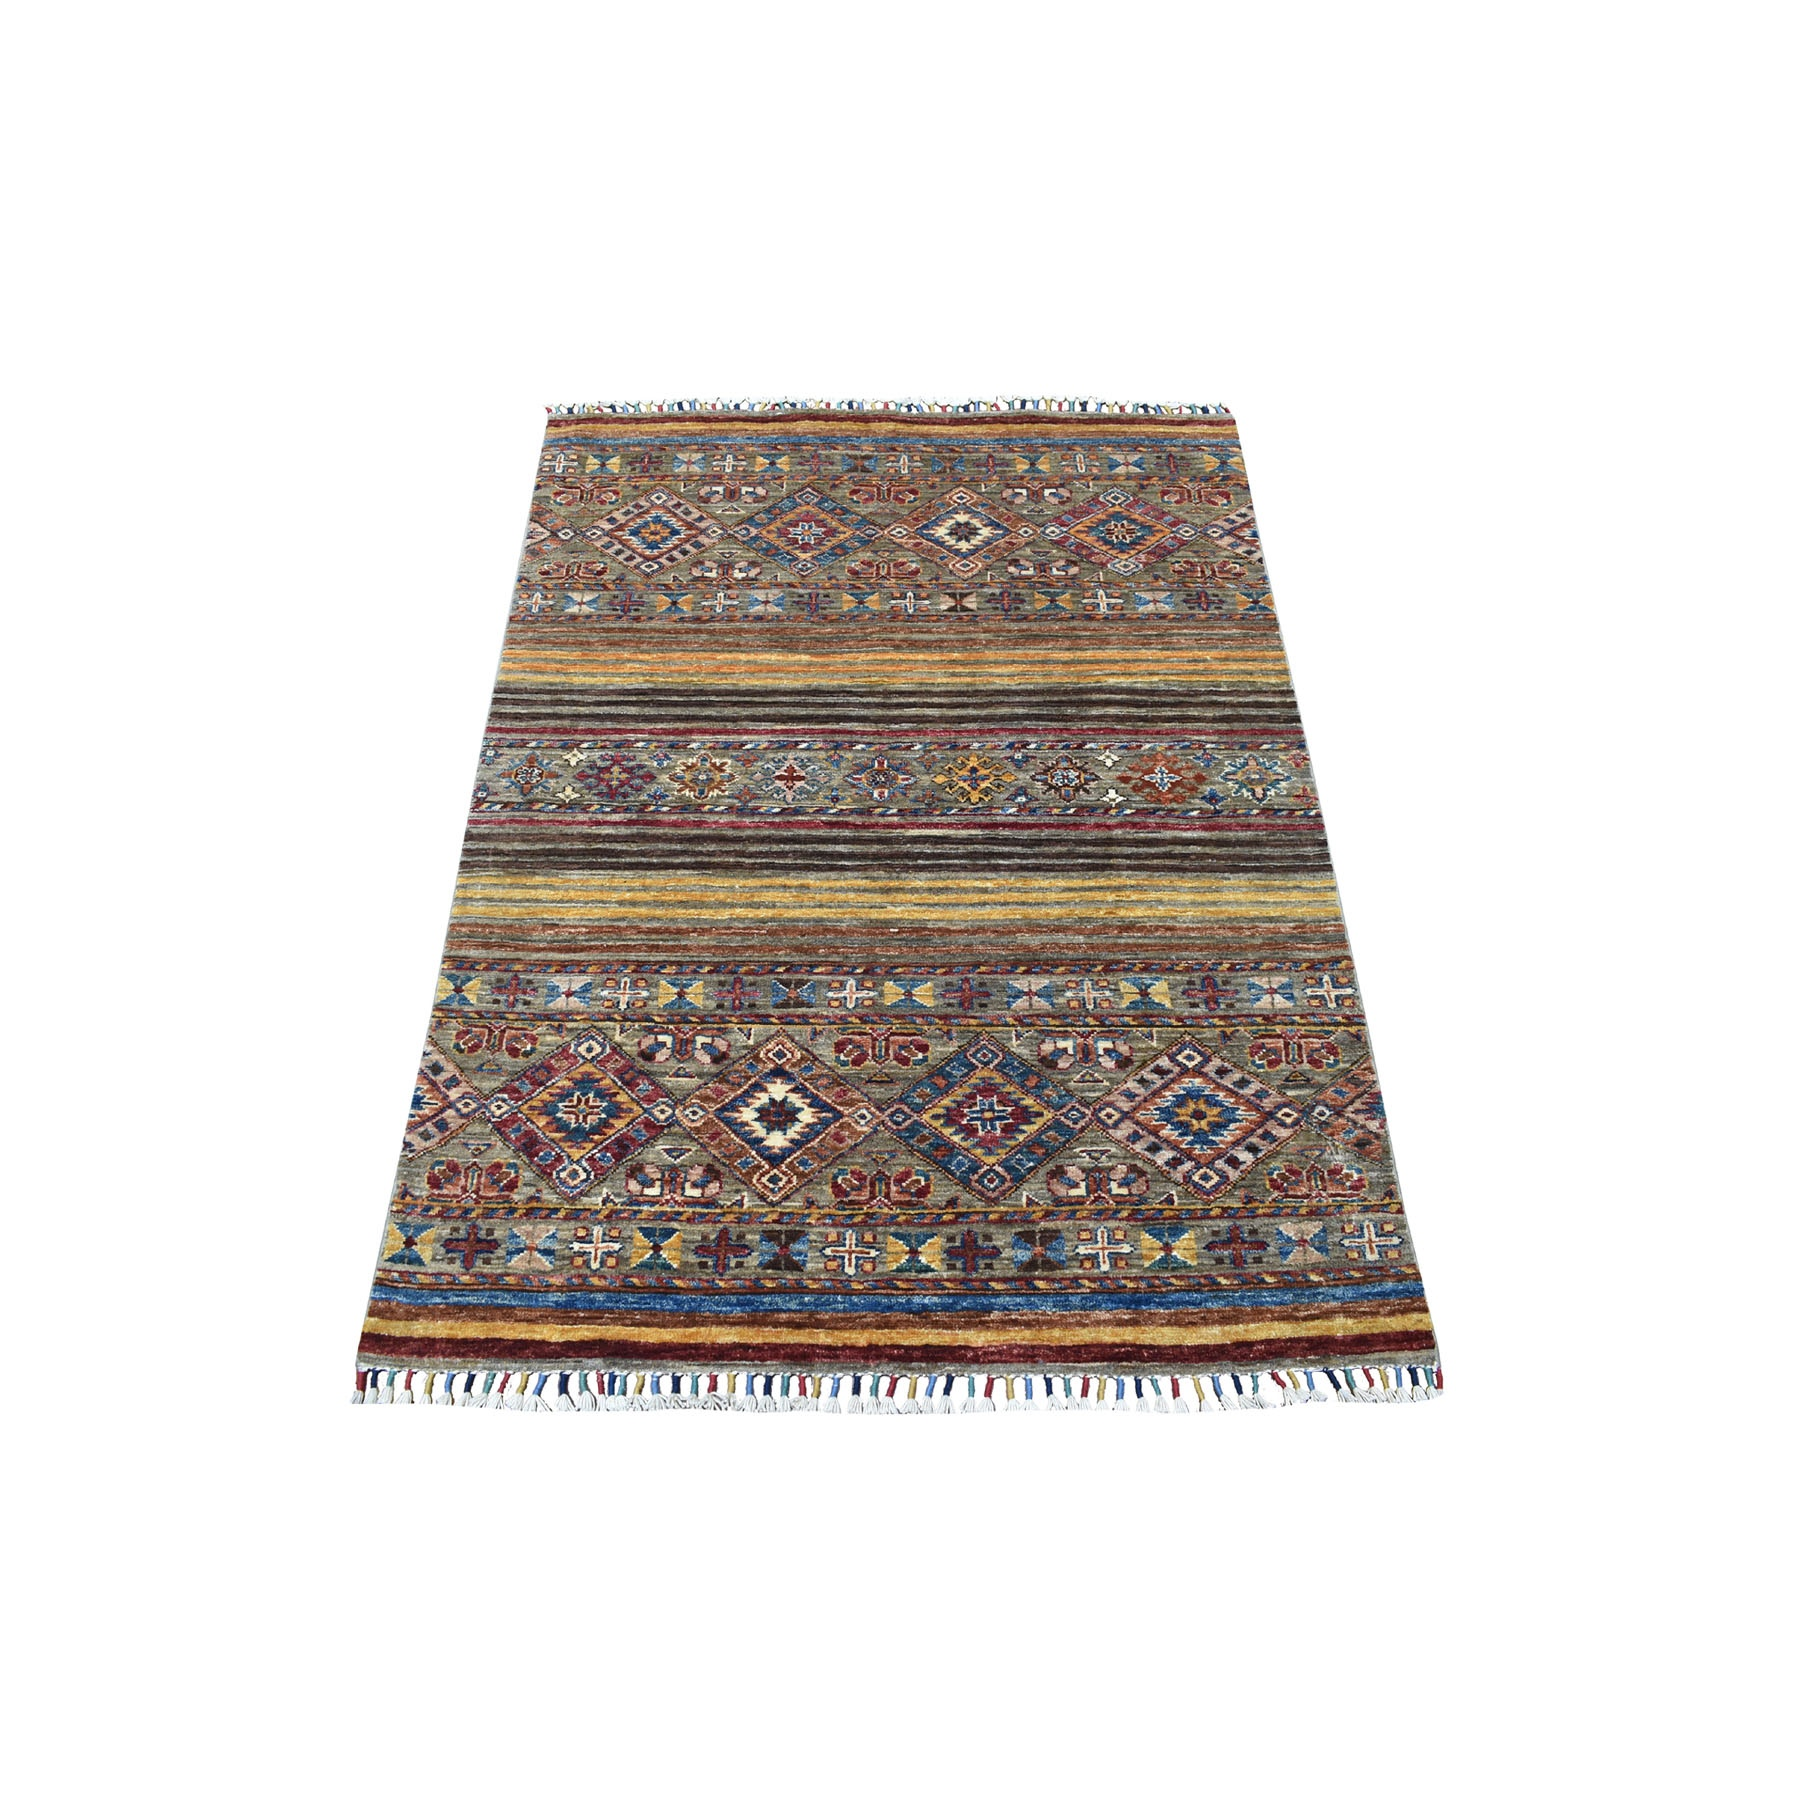 "3'3""x4'8"" Hand Knotted Mustard Yellow With Colorful Tassles Super Kazak Khorjin Design Afghan Wool Oriental Rug"